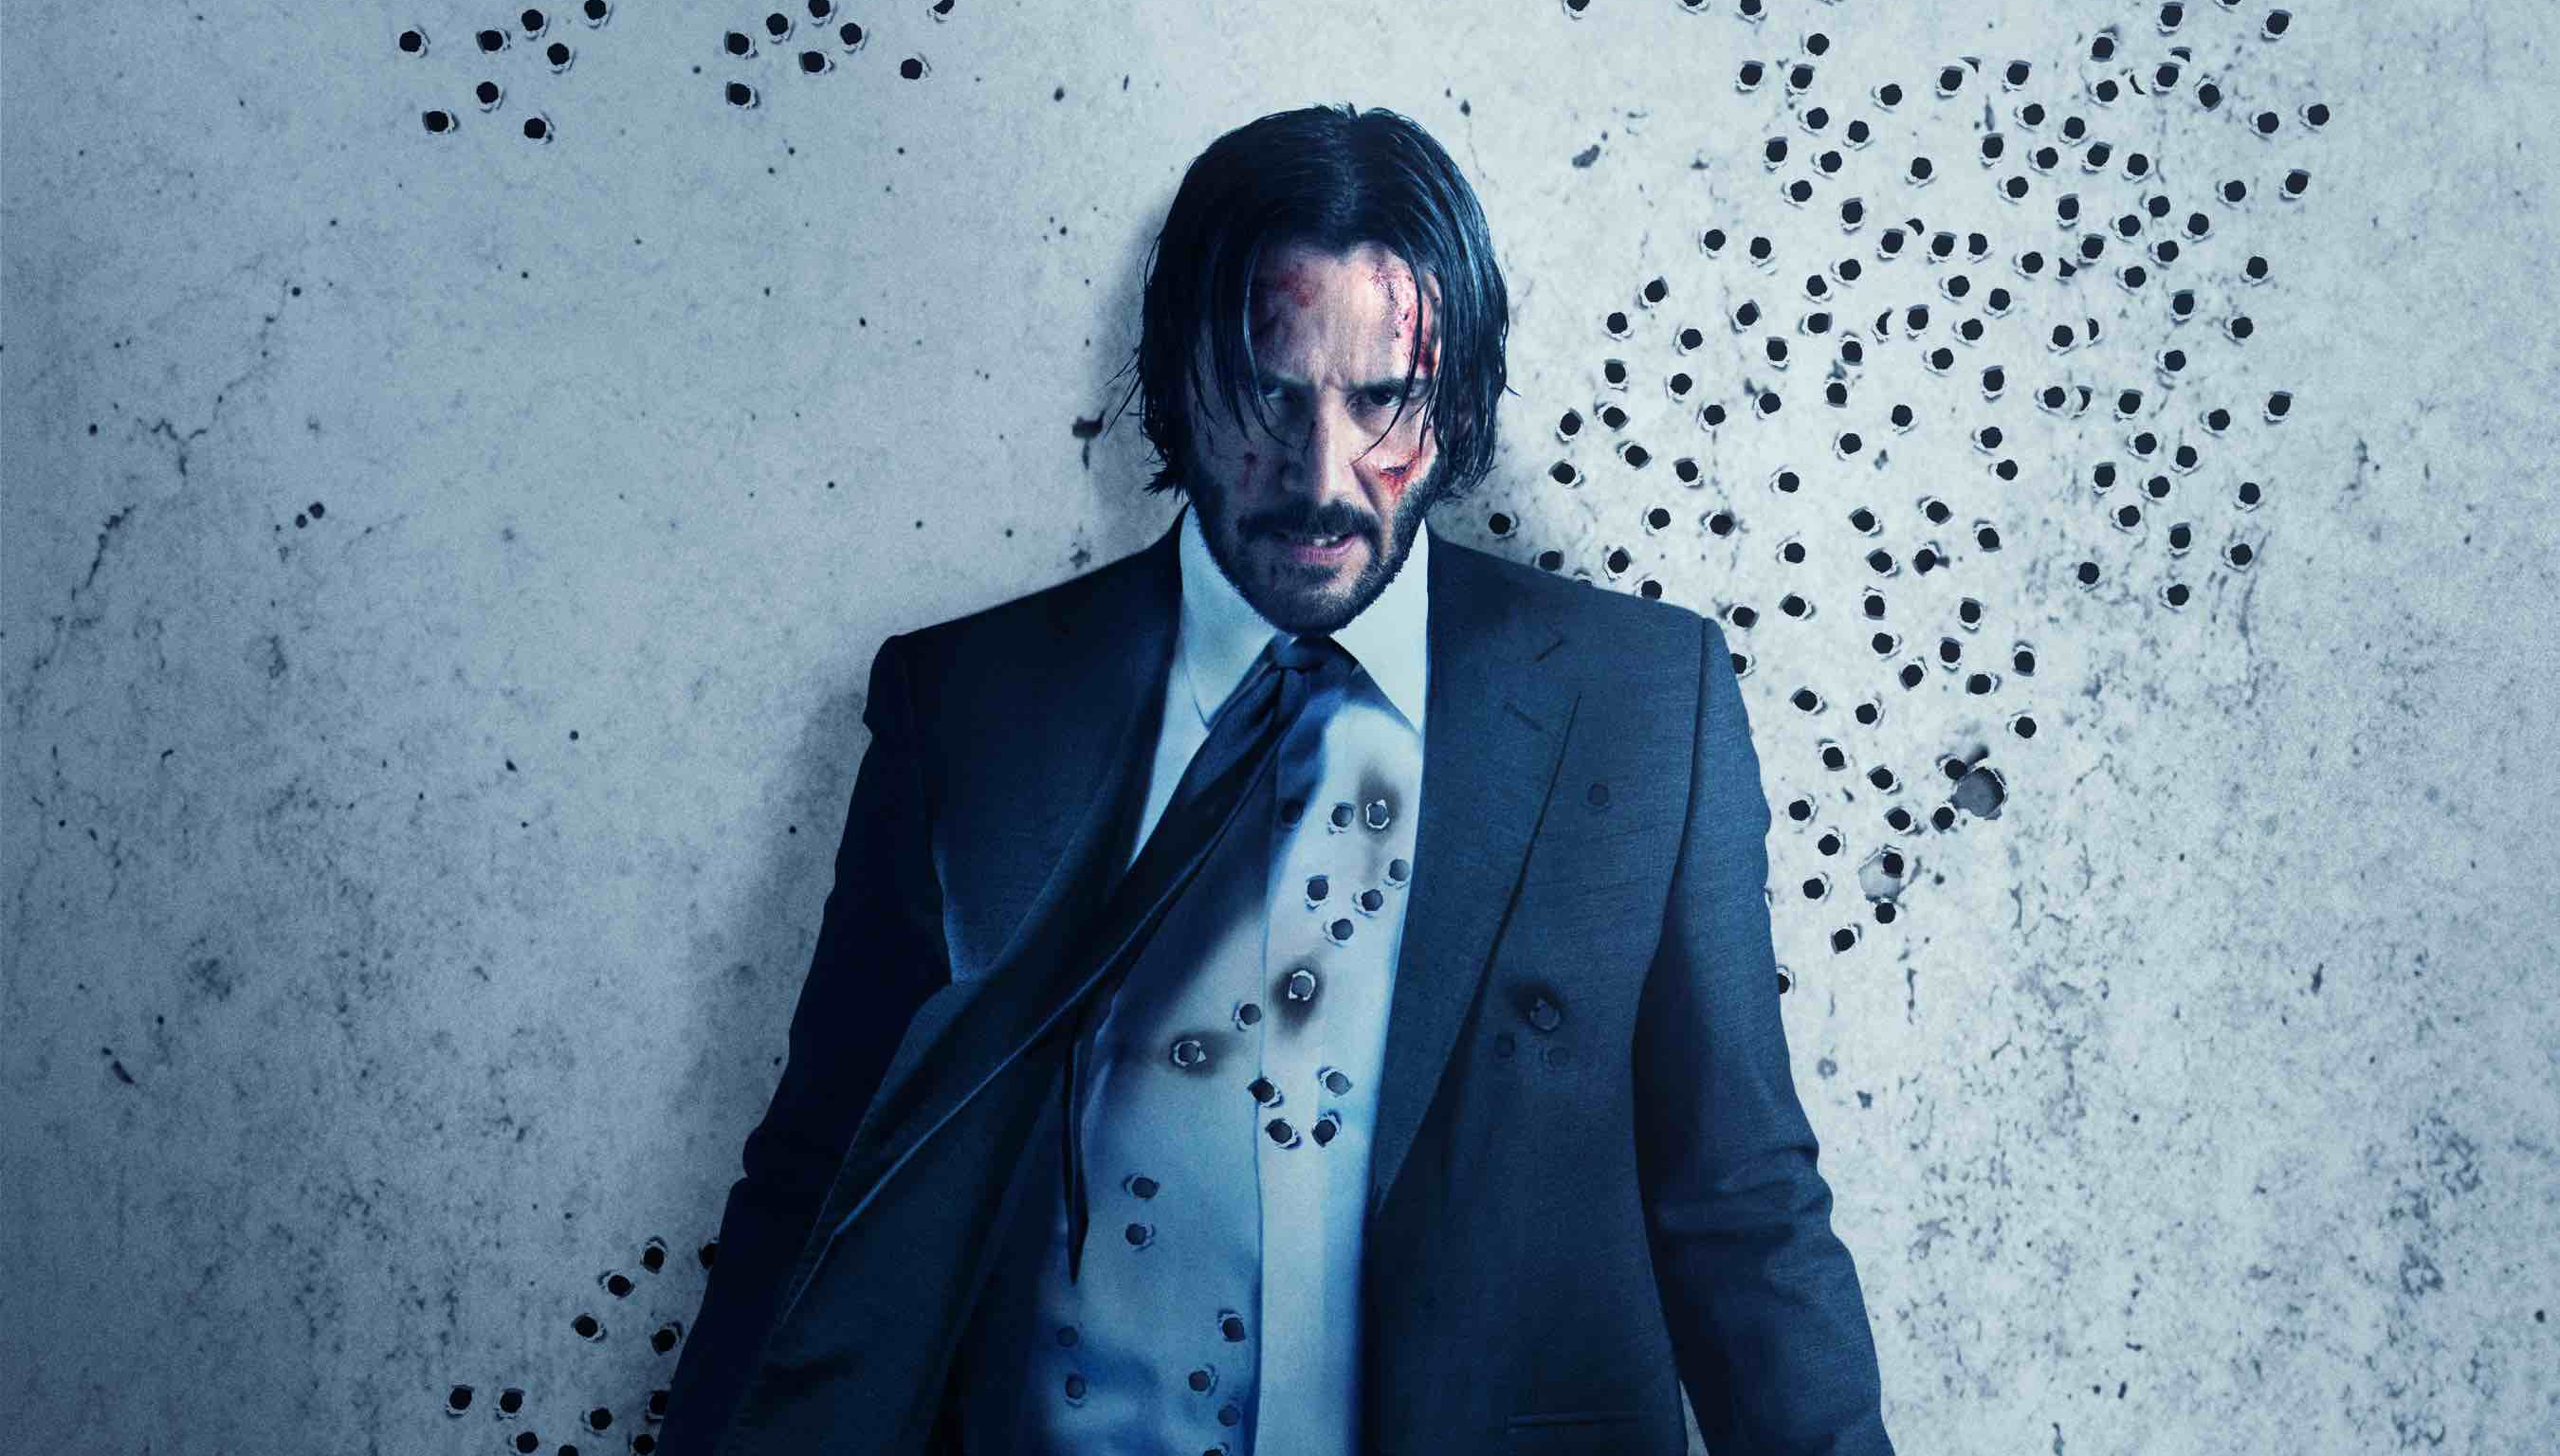 Slider 2 >> John Wick 2 - la critique du film